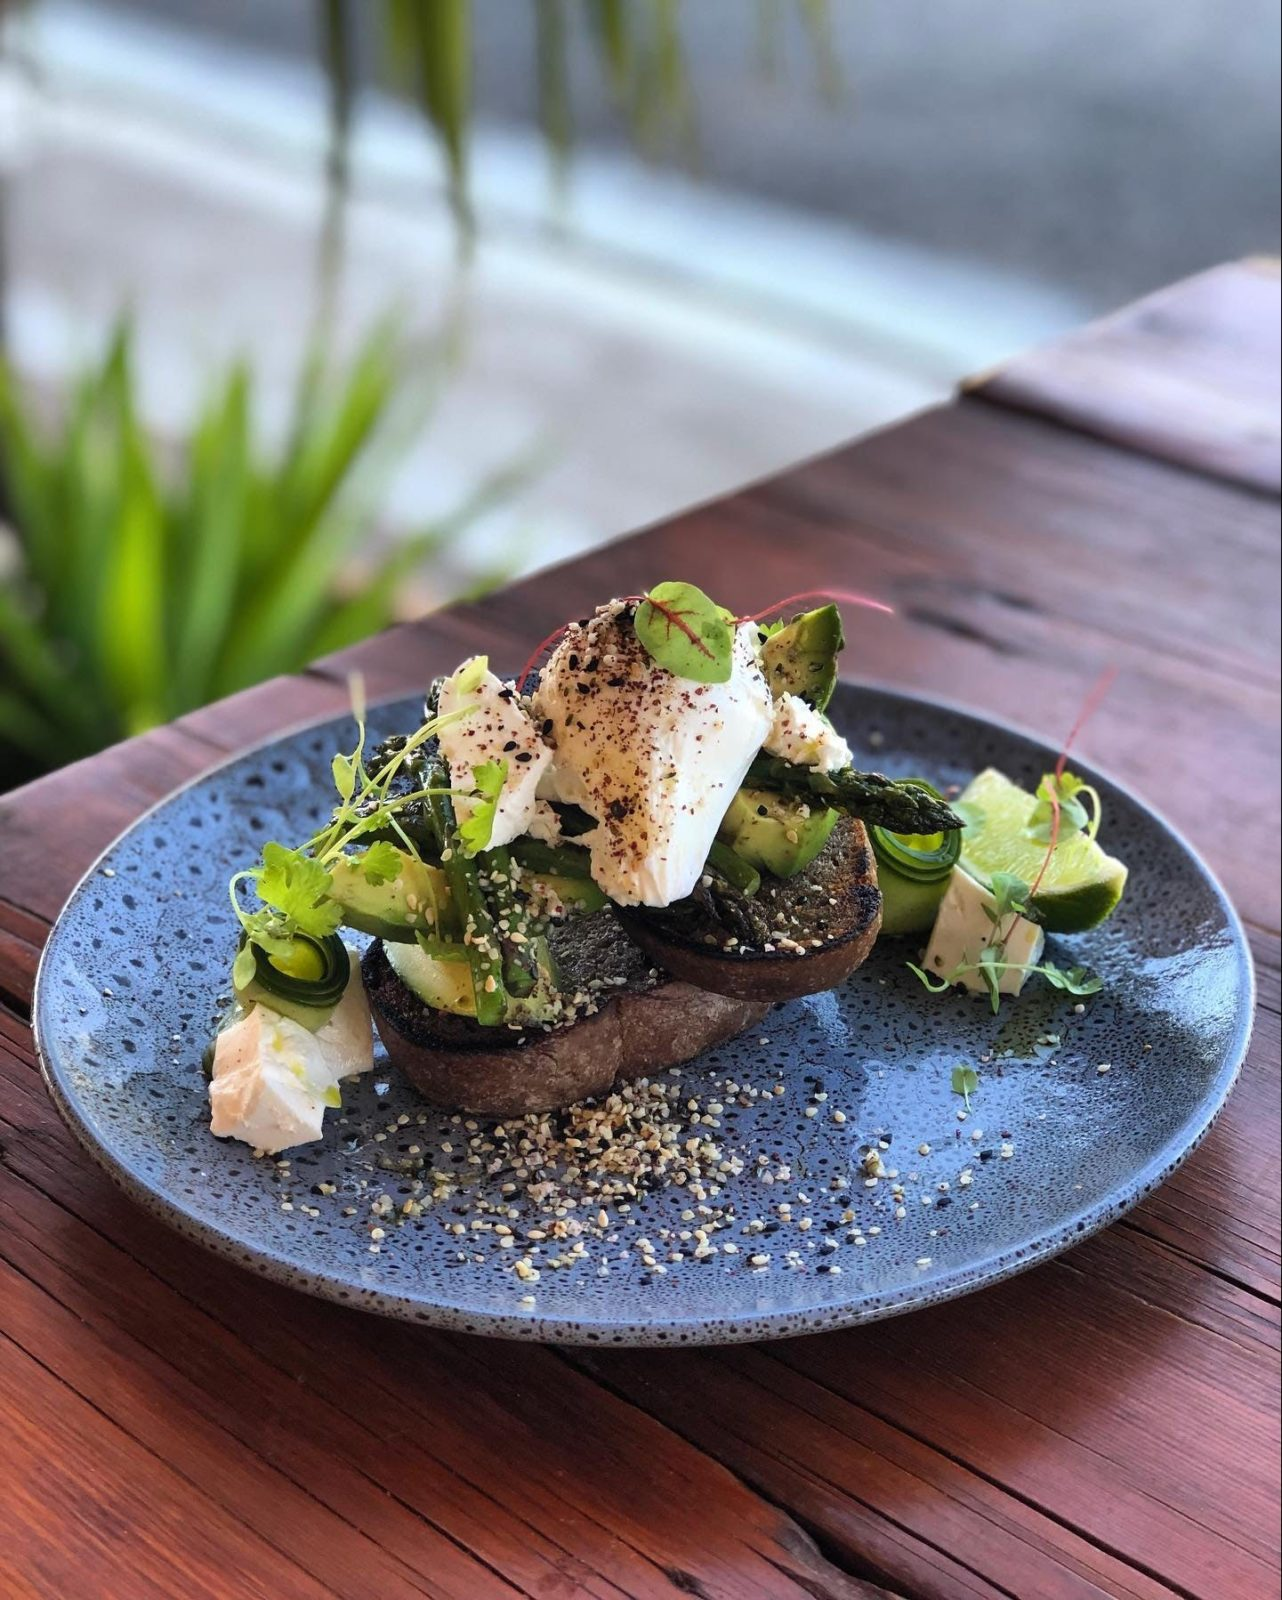 Pickled cucumber, feta, asparagus, avocado, poached eggs on house made rye